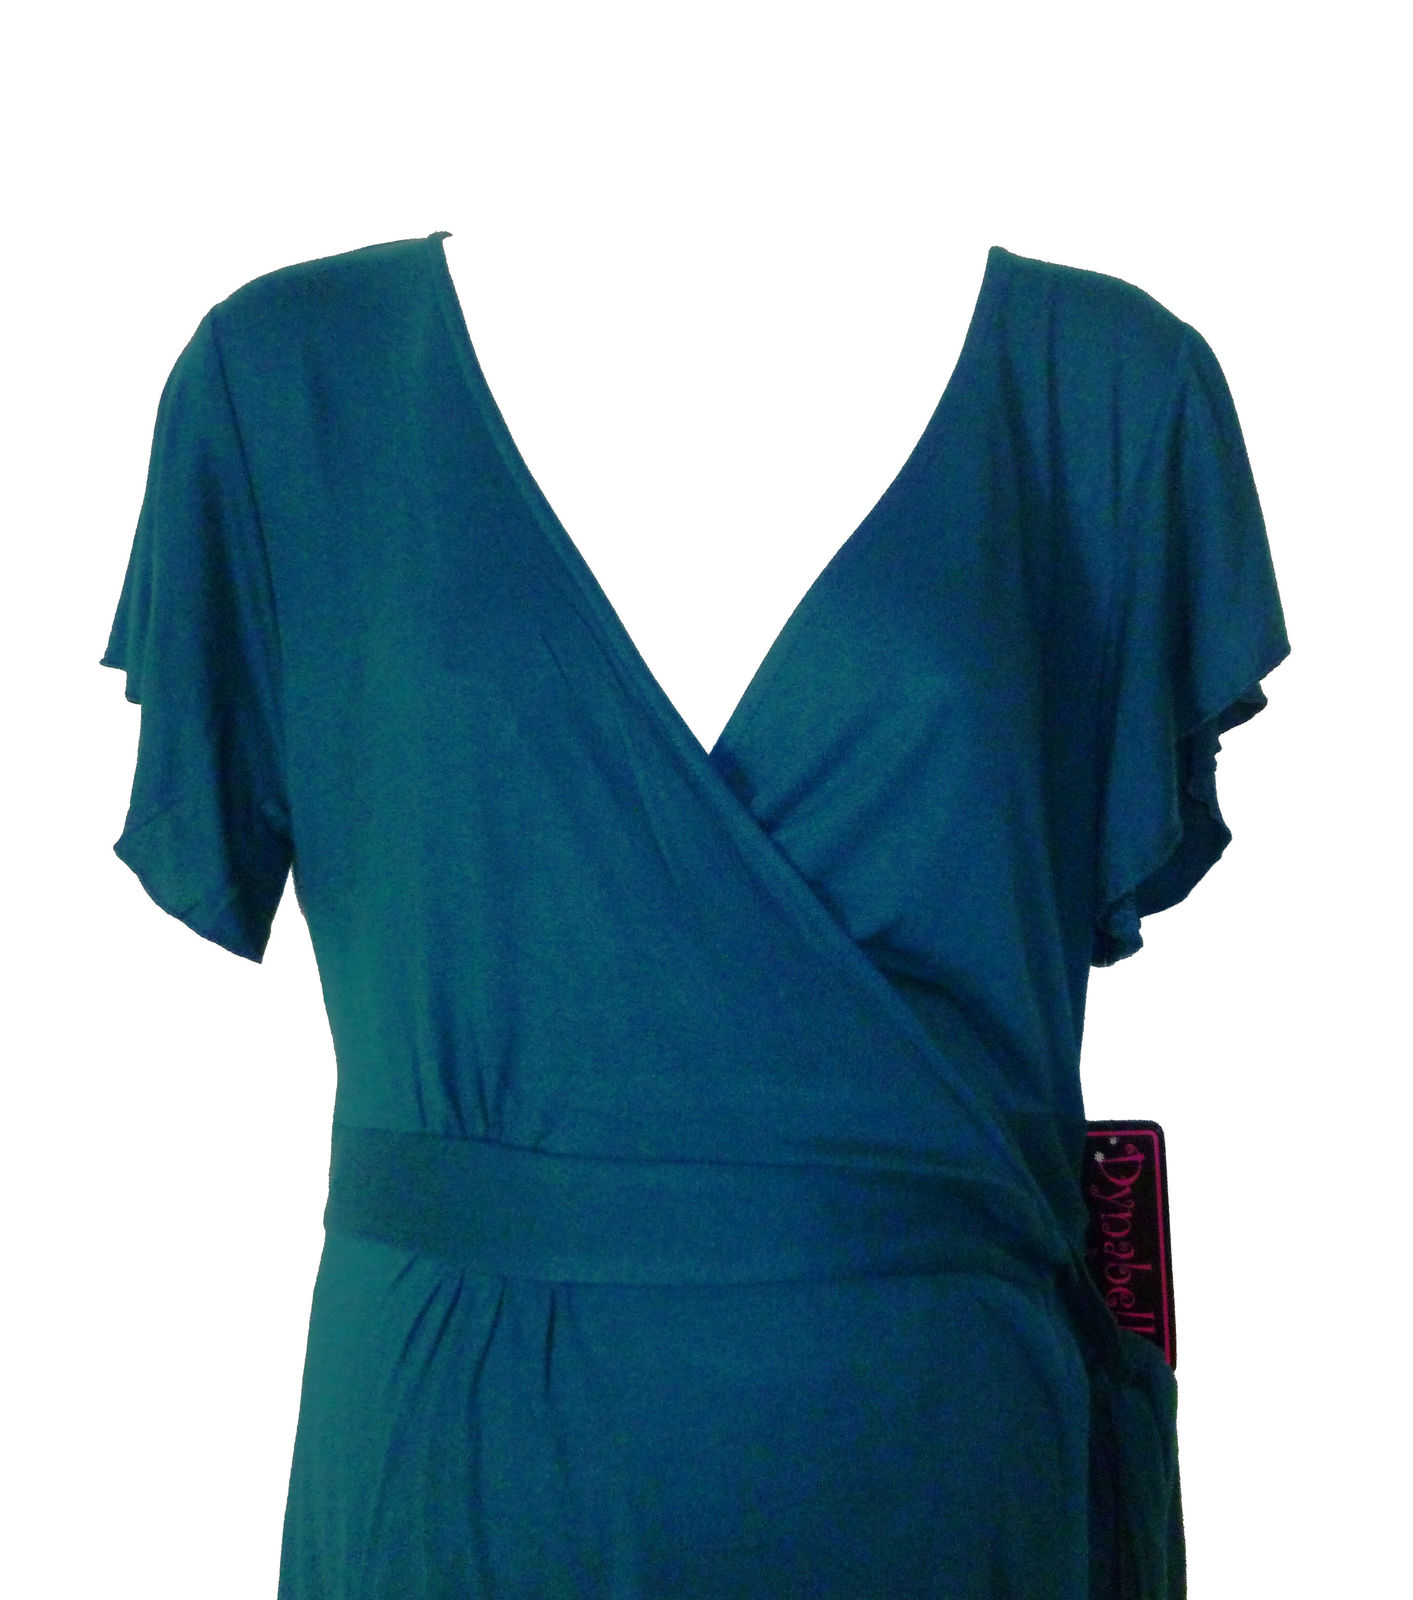 New Maternity Teal Knit Wrap Dress